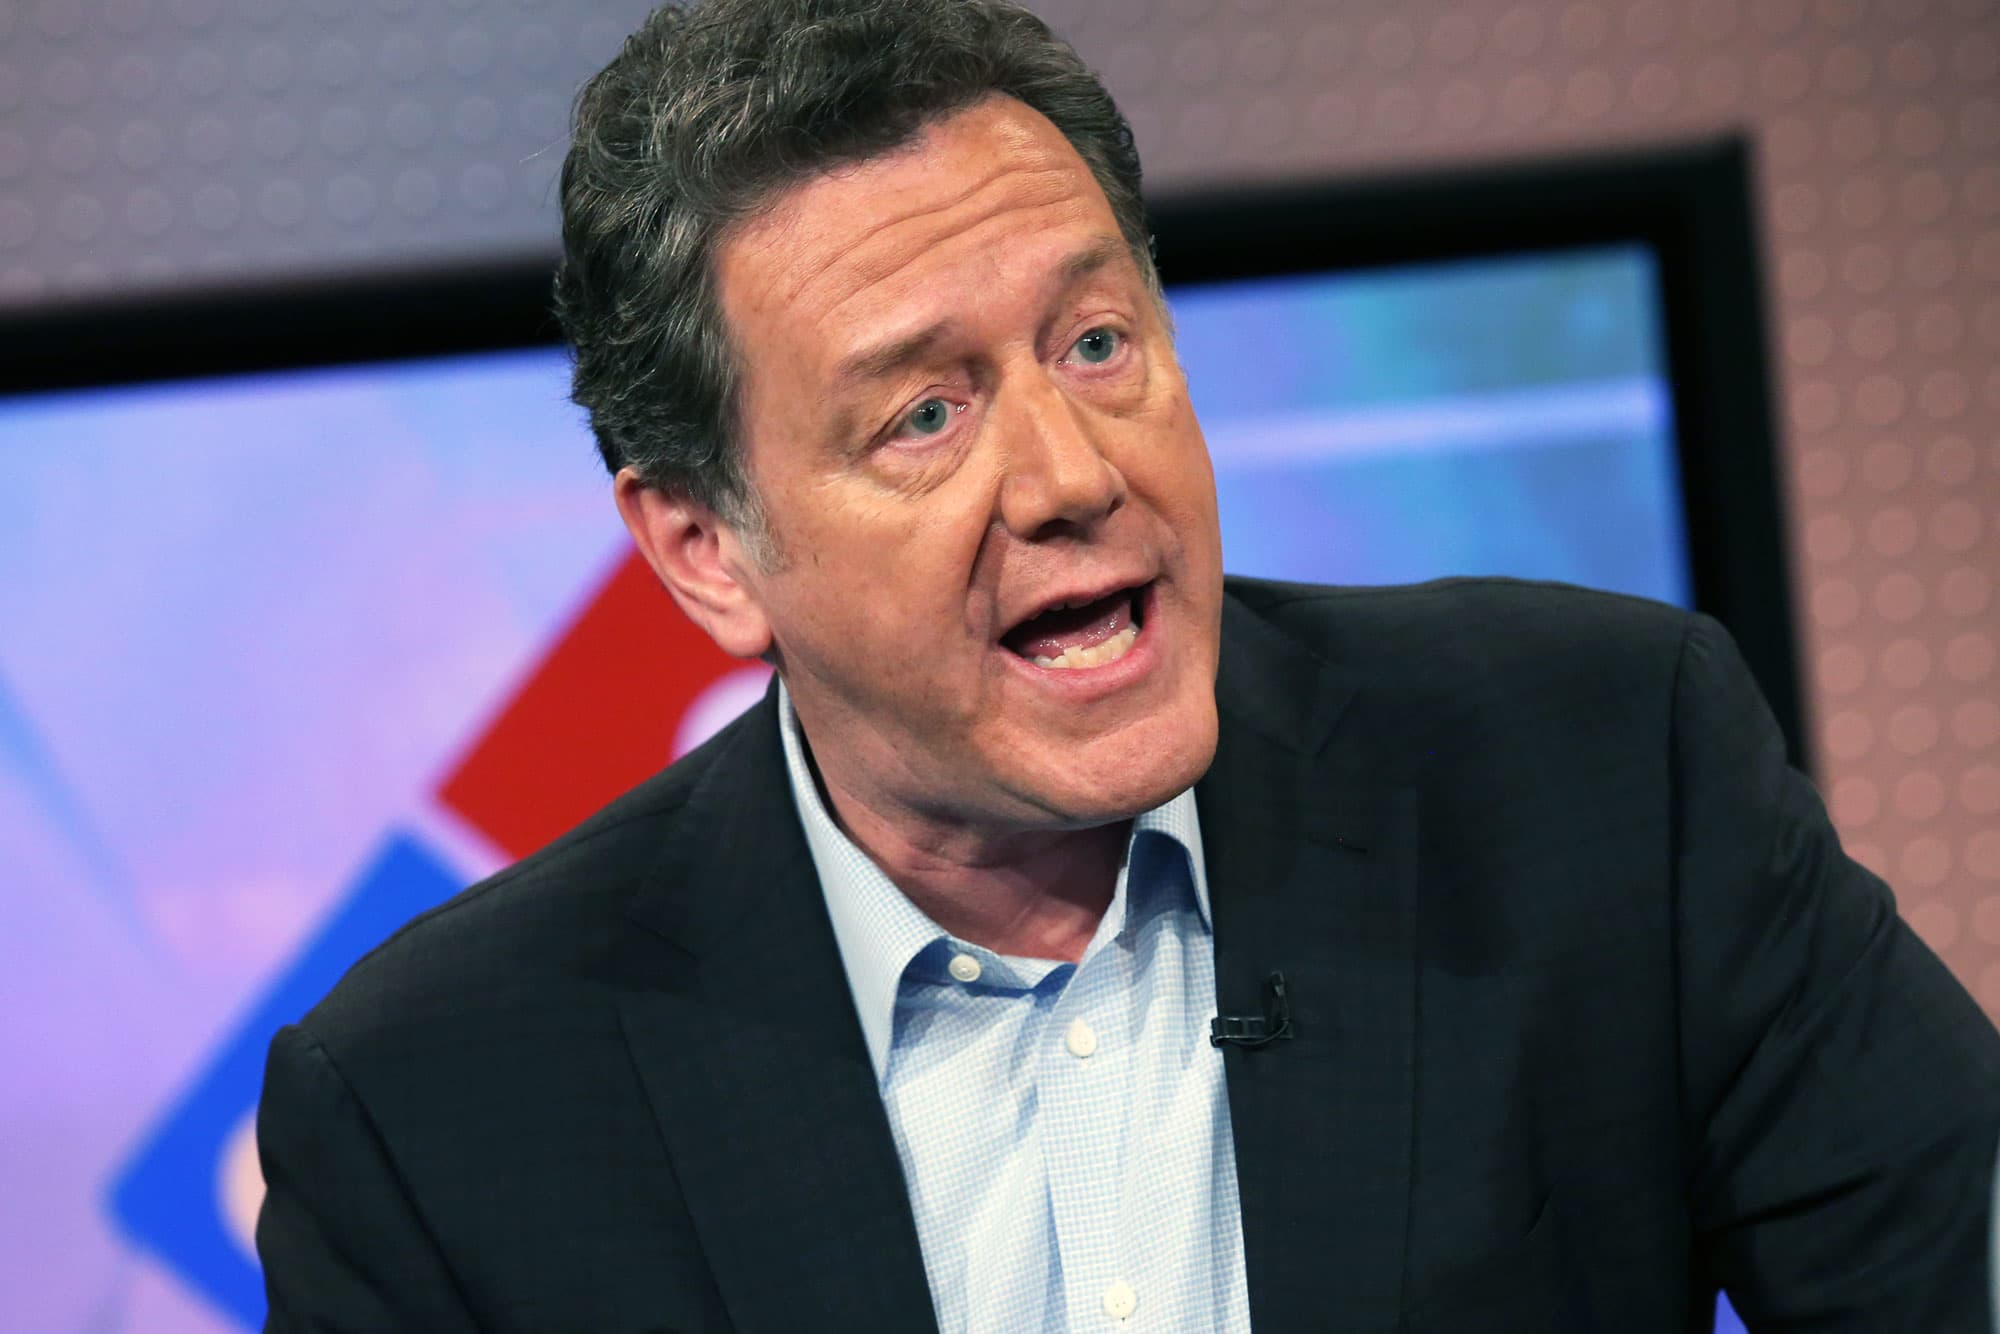 Domino's Pizza CEO on departure: 'There's a rhythm to these